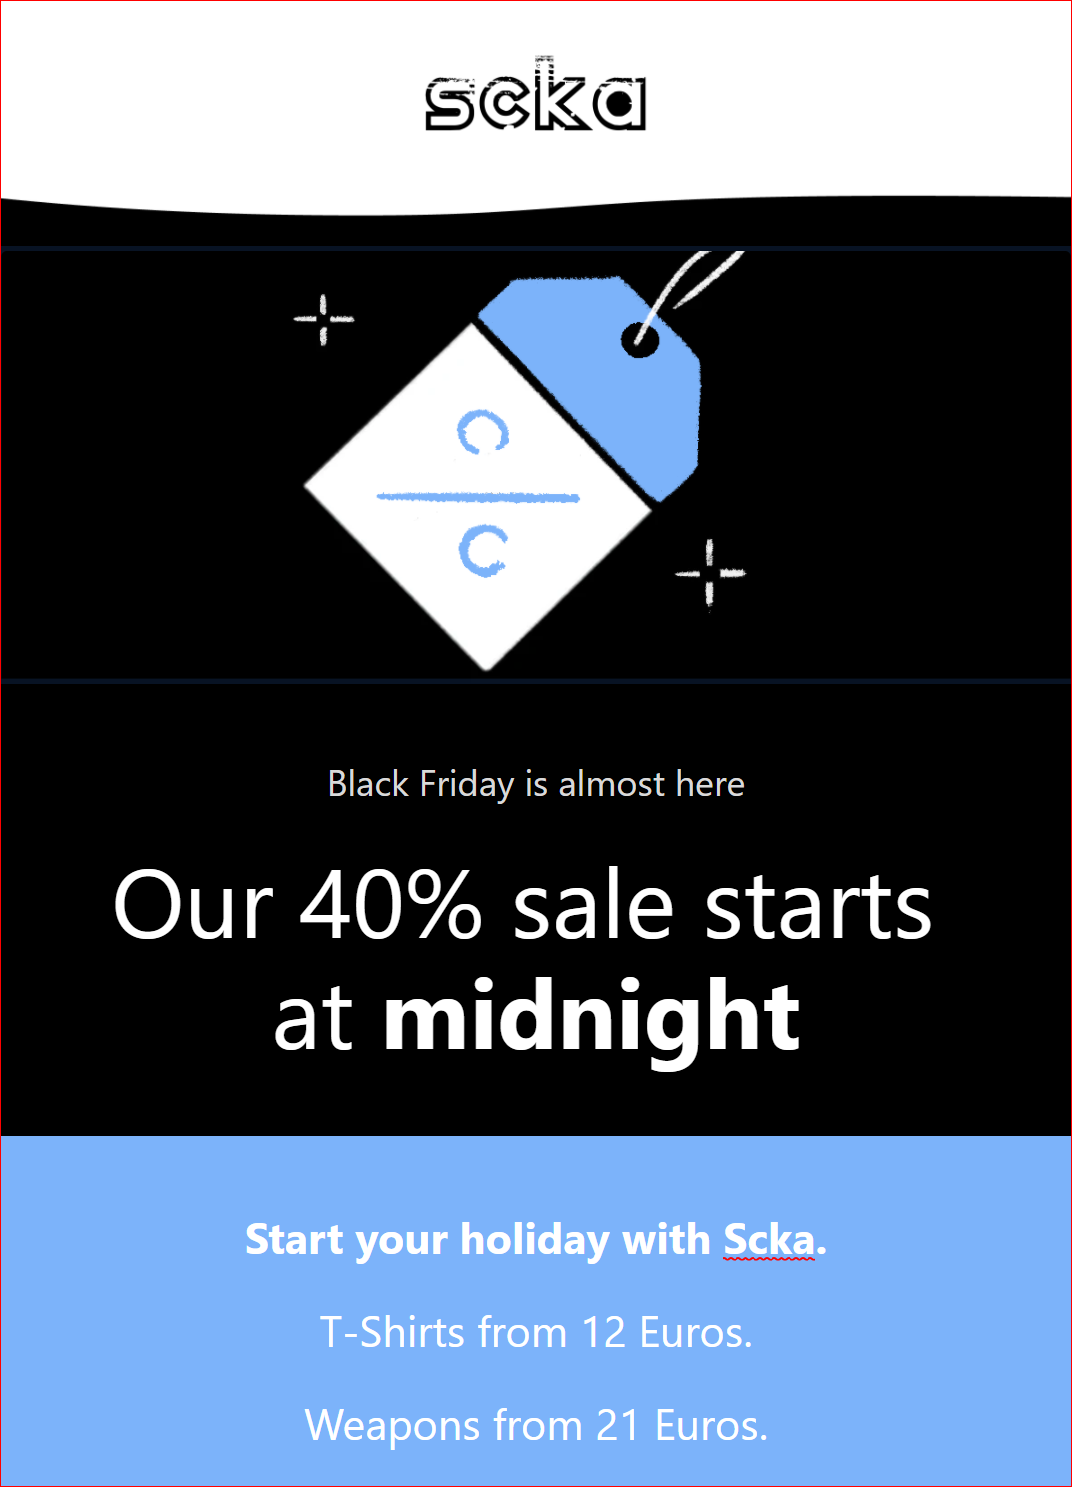 Scka Black Friday